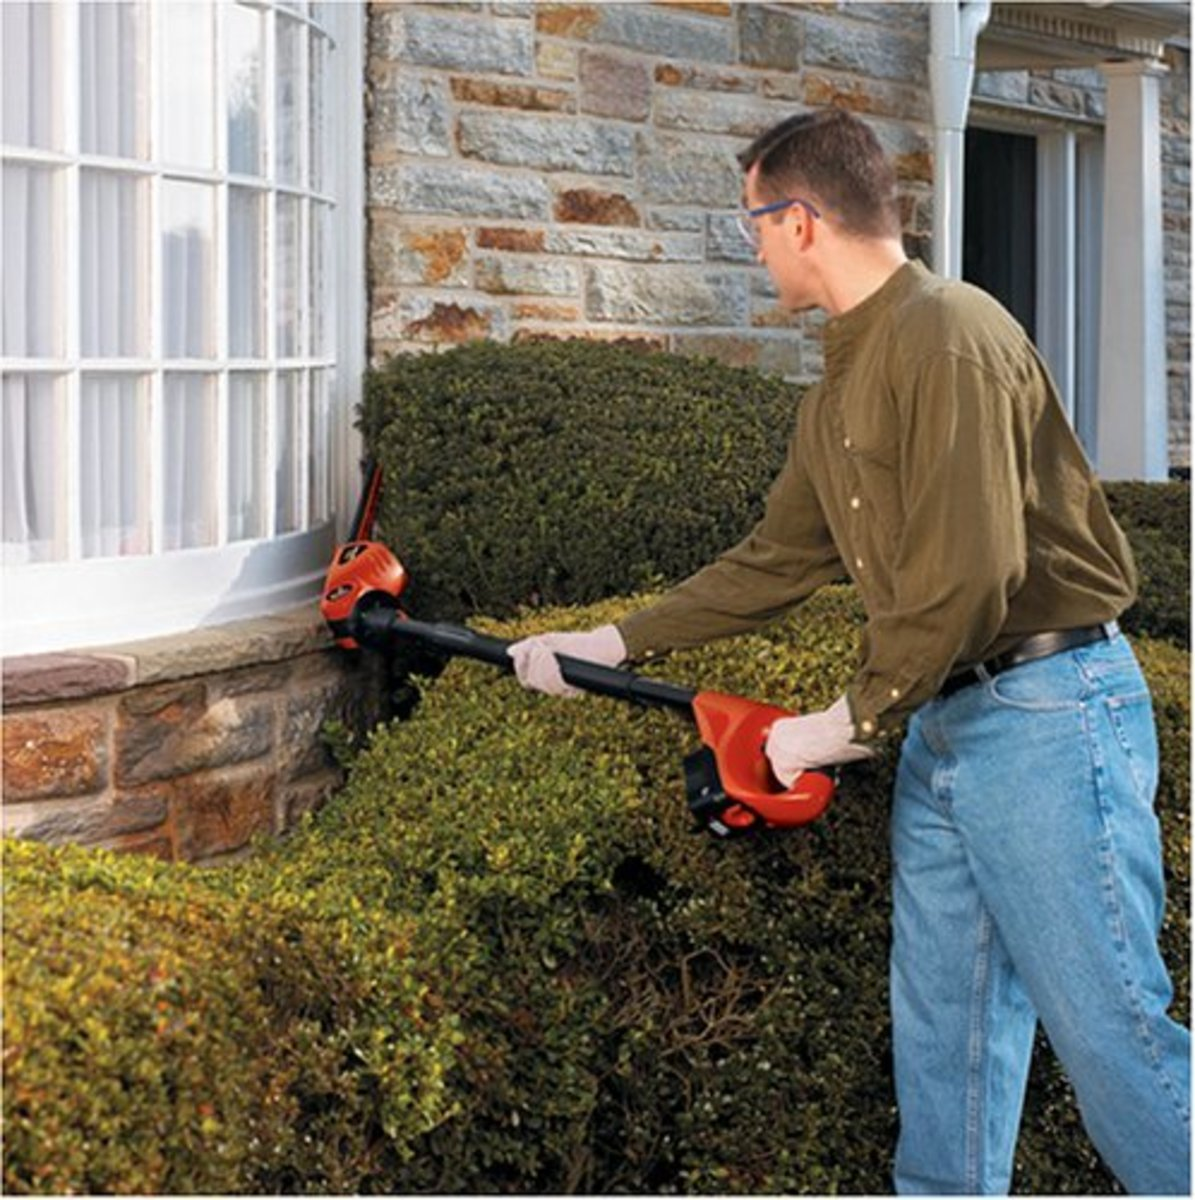 The rotating head is useful for low-level work as well as tall hedges.